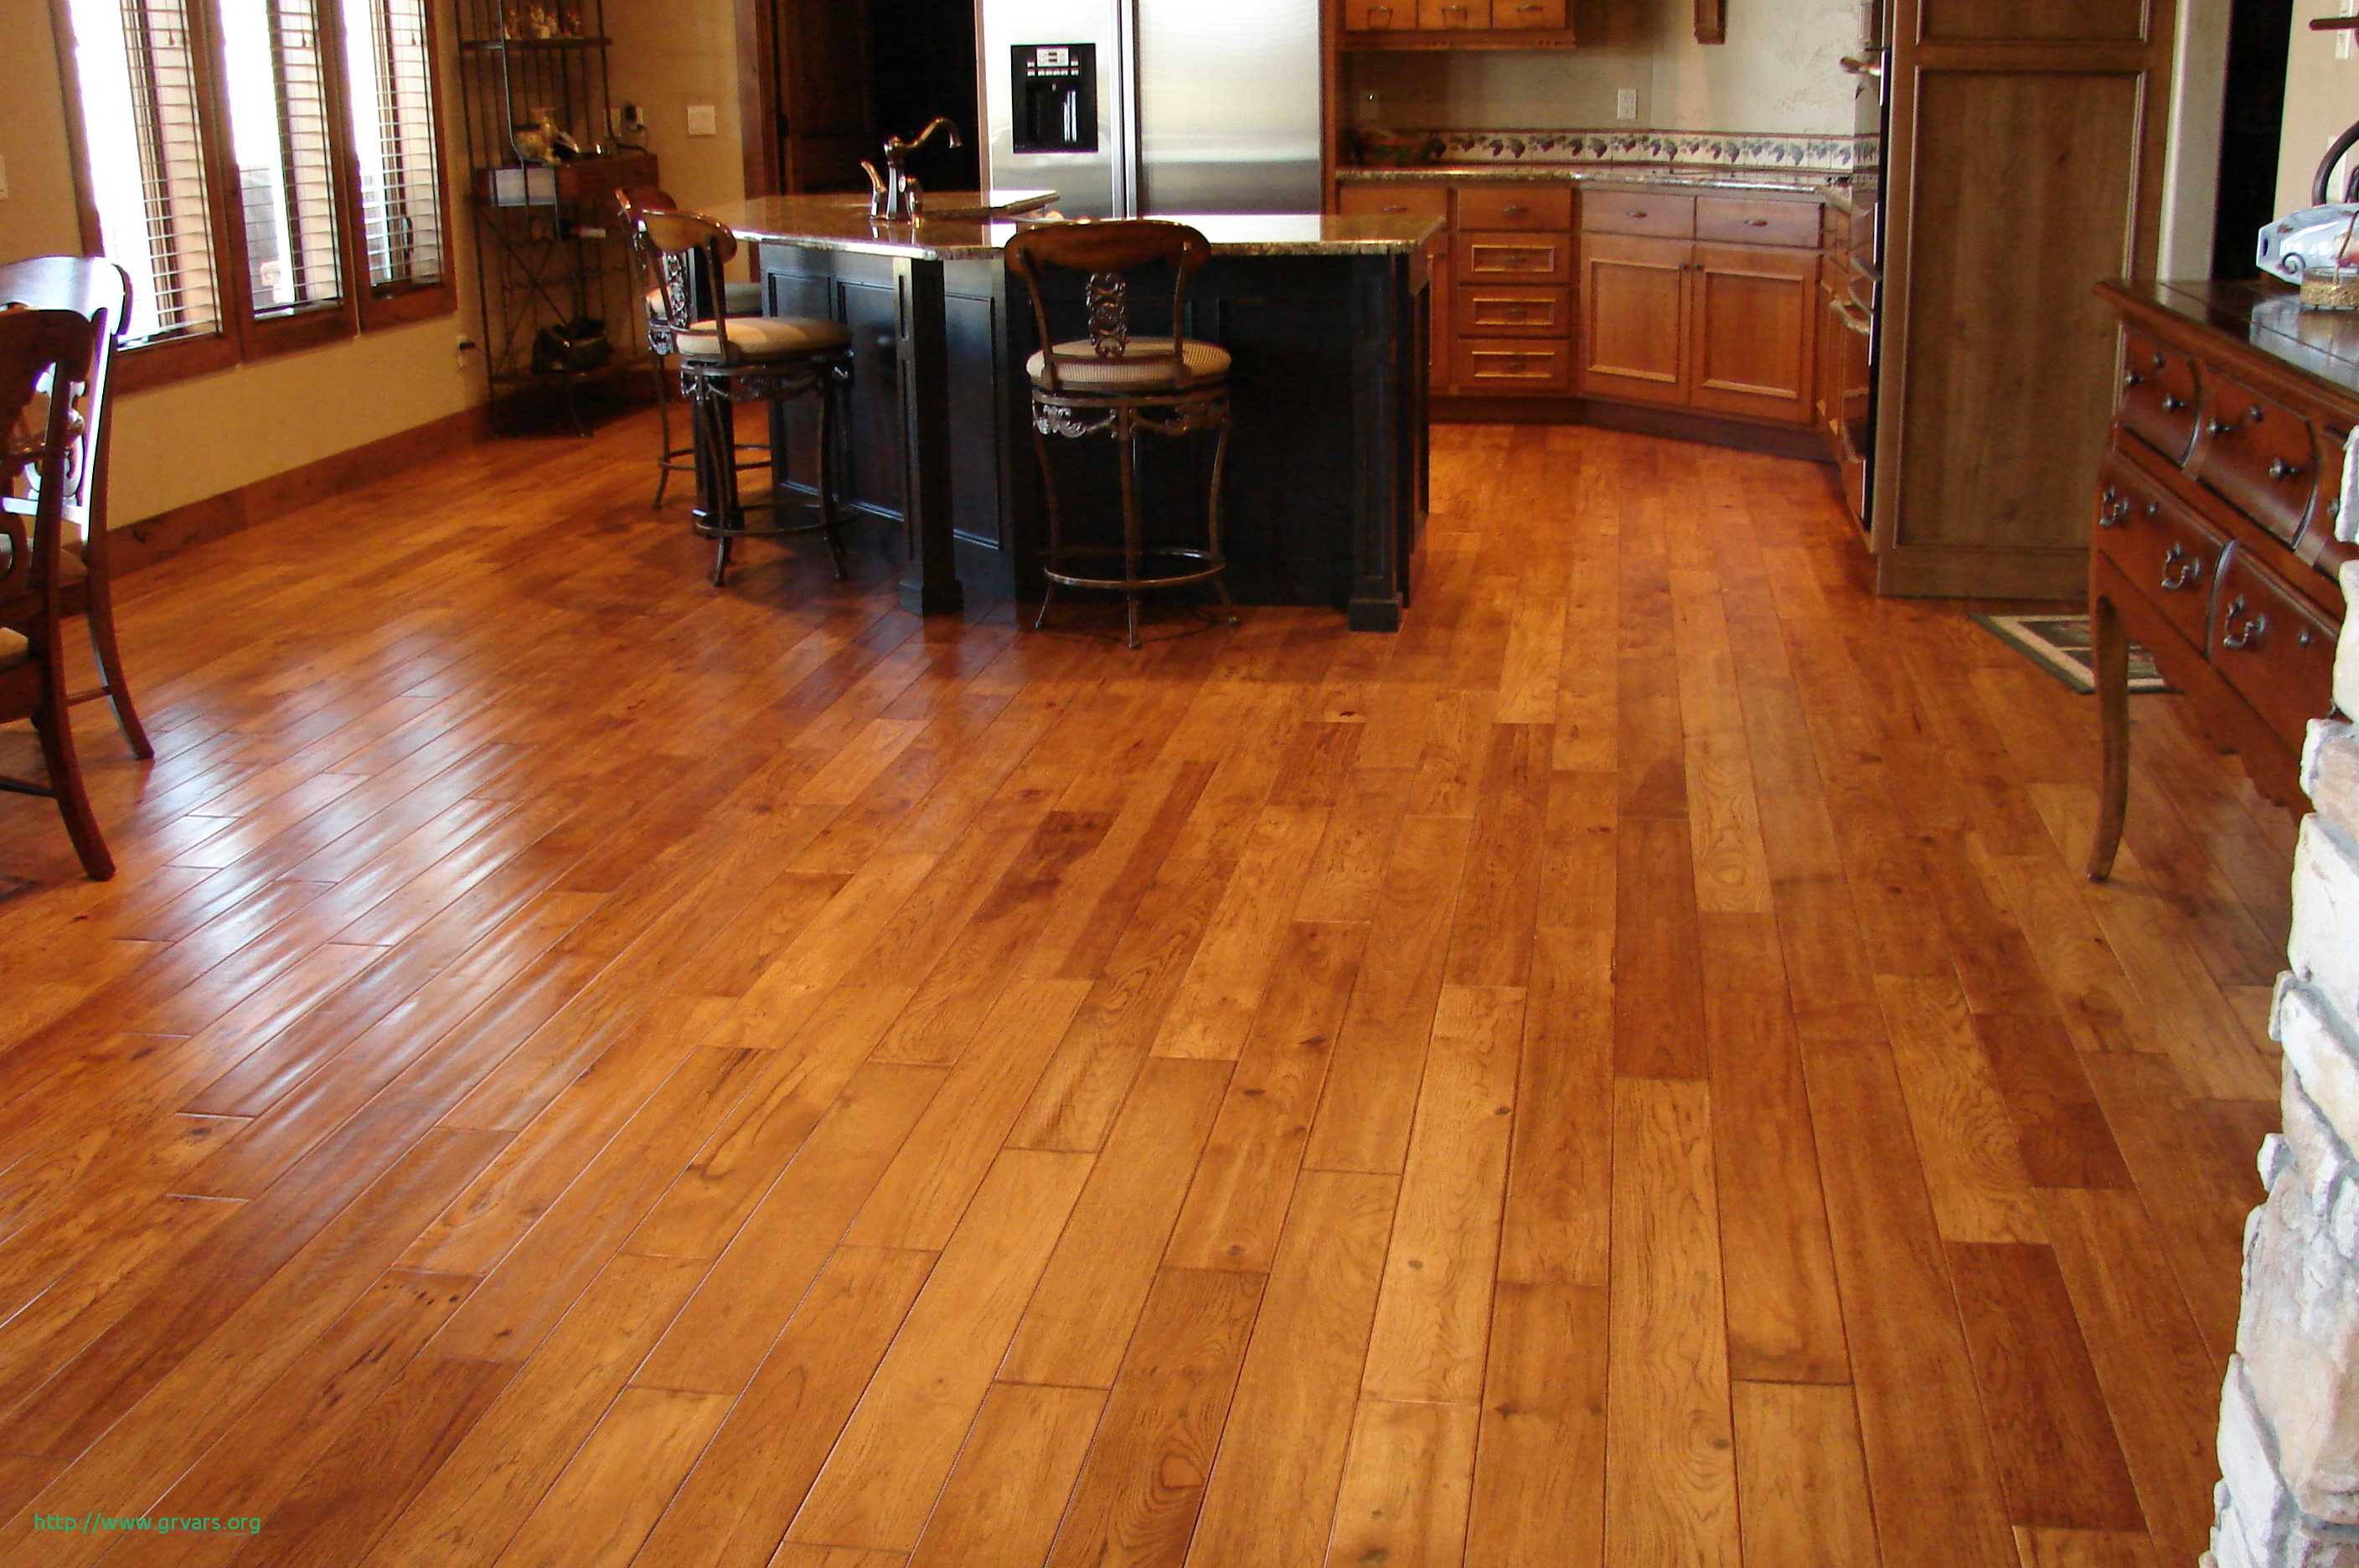 7 plank hardwood flooring of floores san antonio nouveau engaging discount hardwood flooring 5 with floores san antonio charmant breathtaking discount hardwood flooring 7 how do you clean